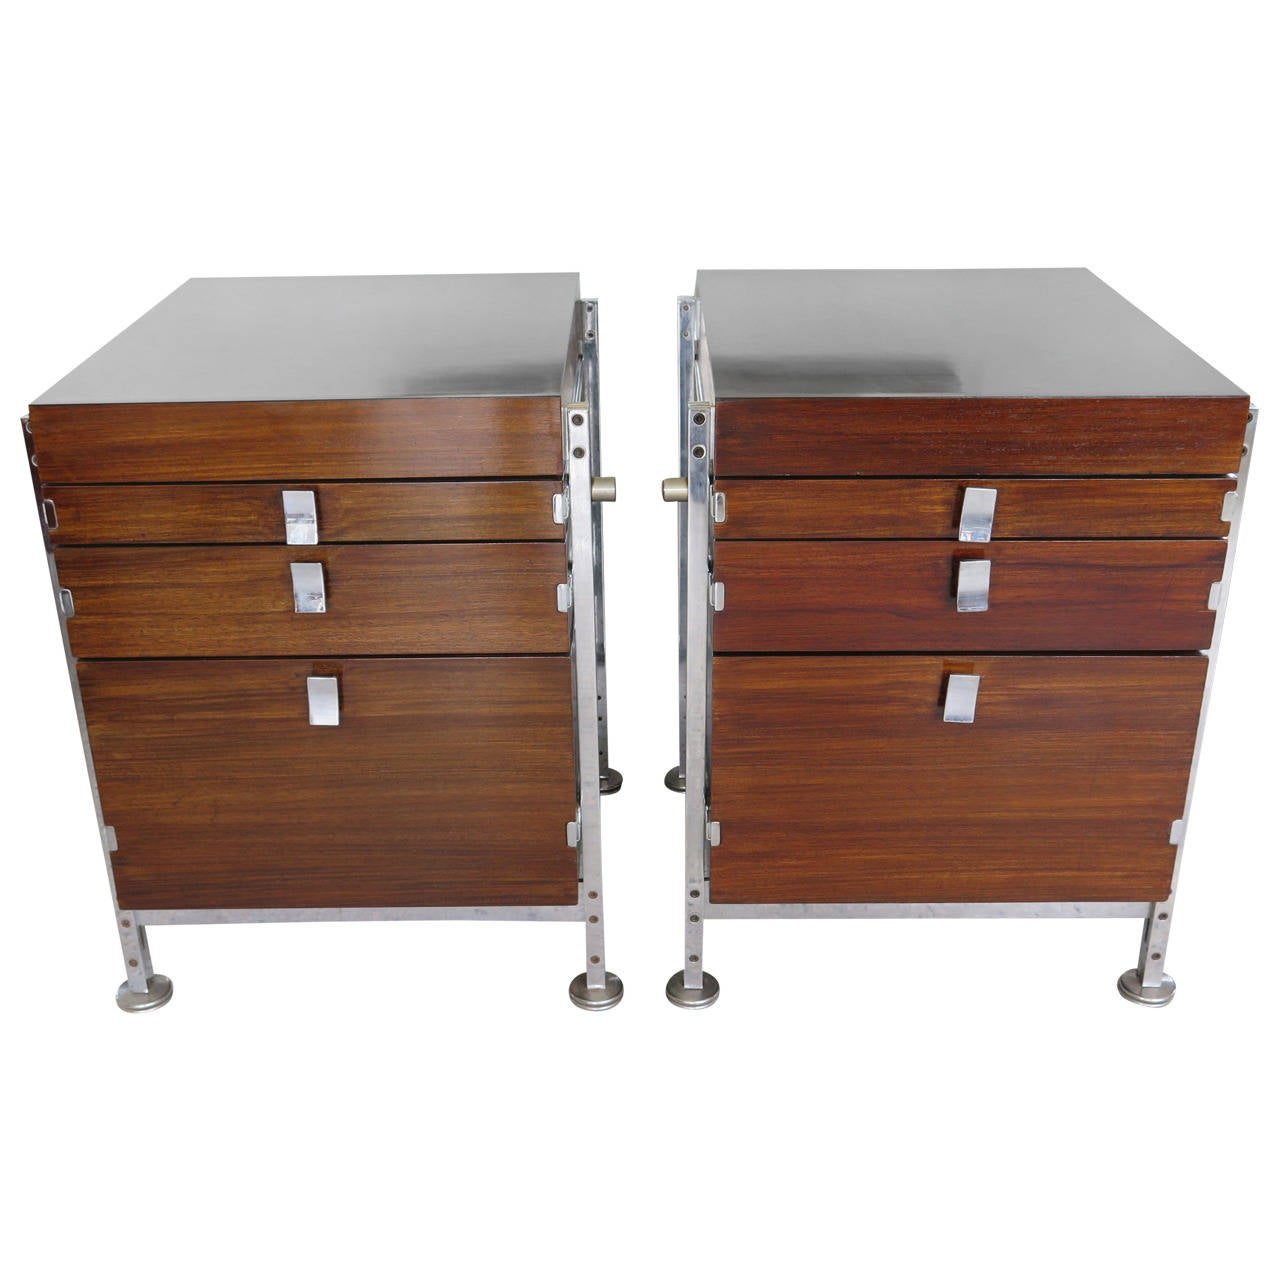 Pair of Cabinets by Jules Wabbes